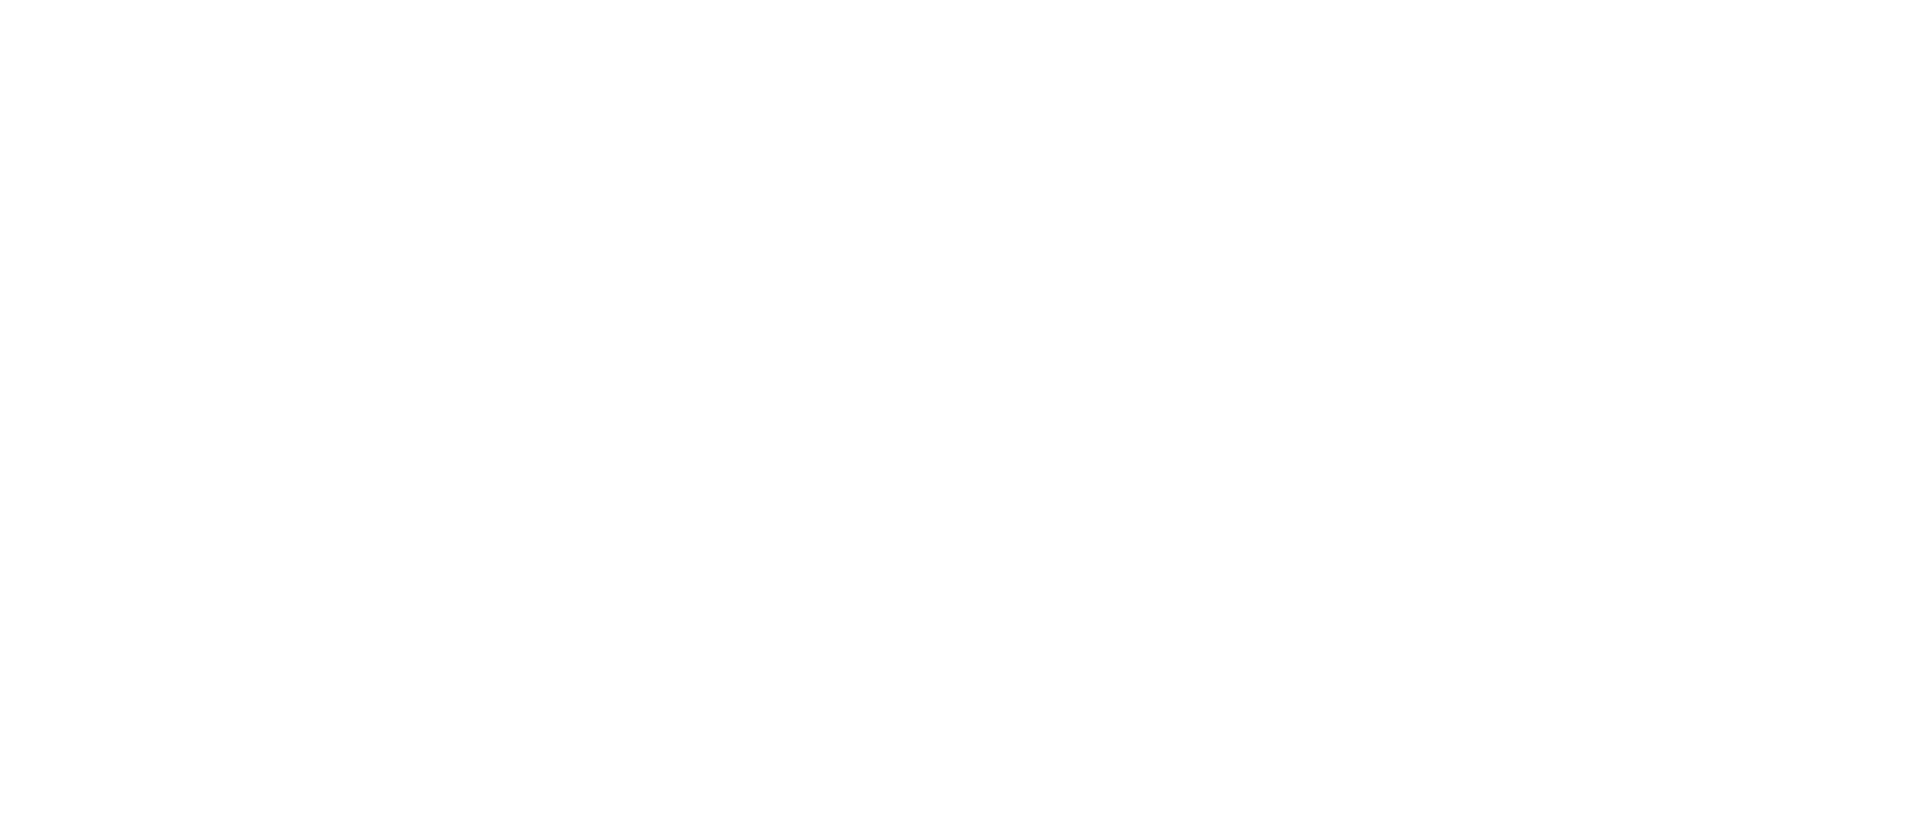 Maribit - Trusted technical advisor to the cannabis industry